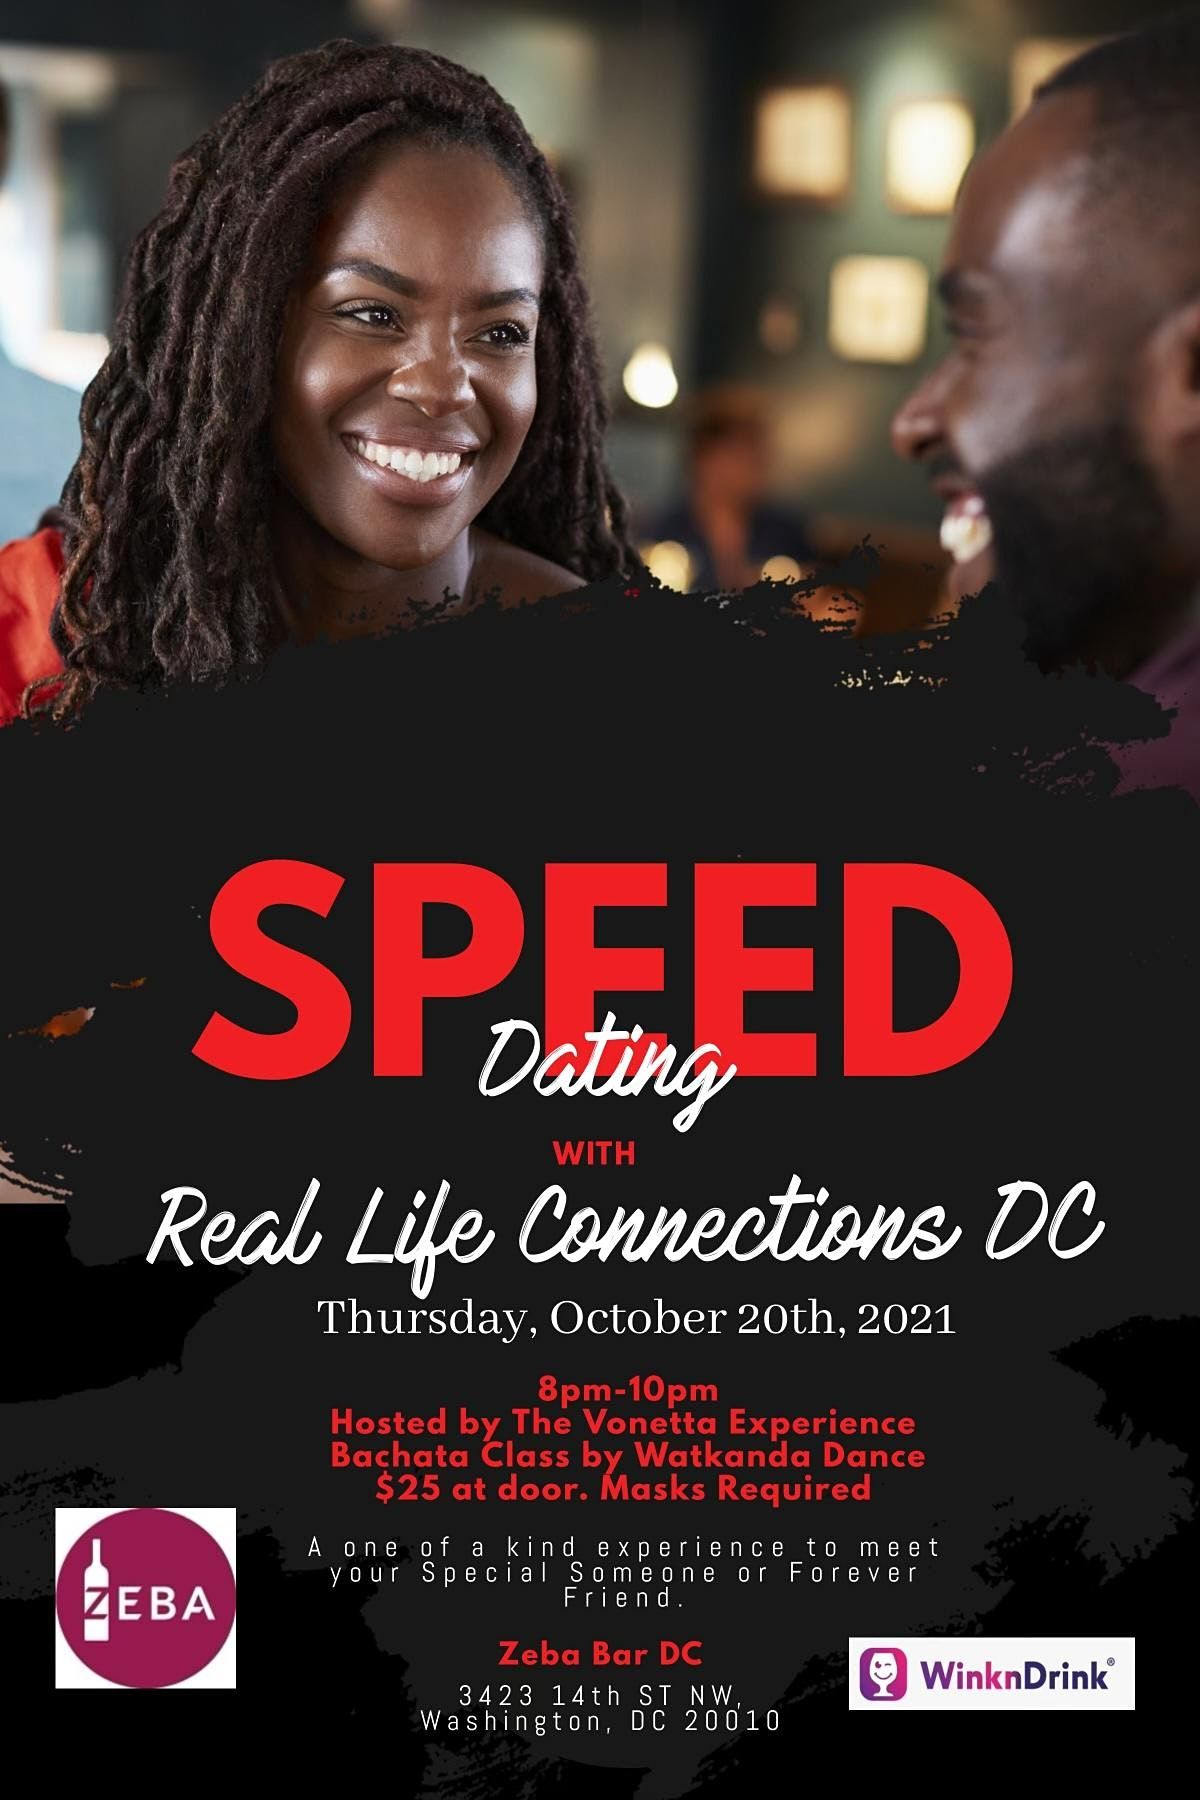 Real Life Connections: Speed Dating for Professionals